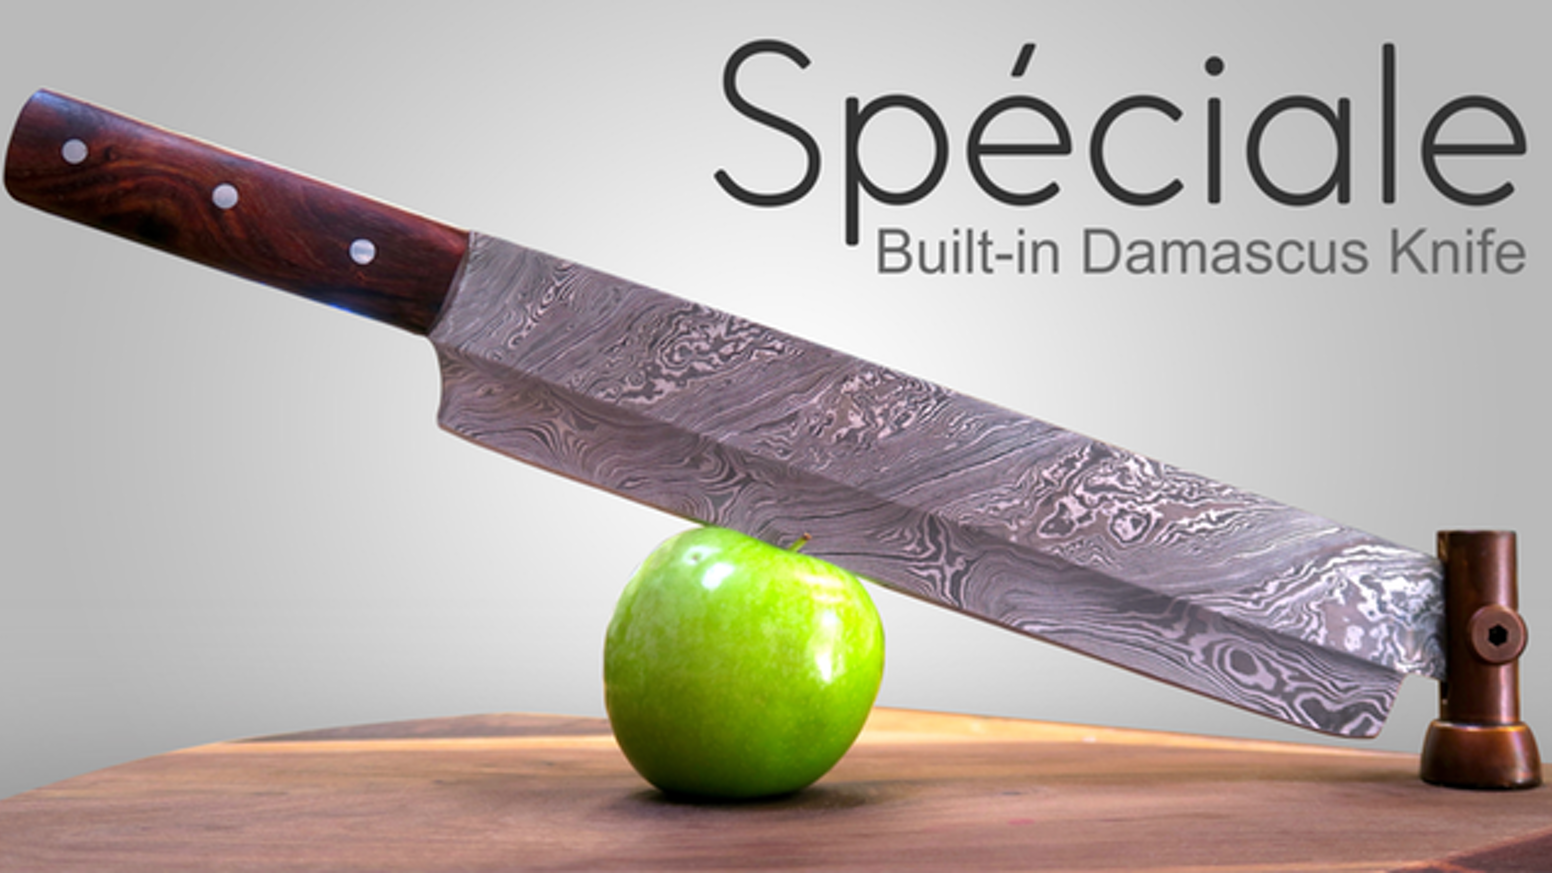 "Built-in 17"" Damascus knife that spins around Walnut cutting board and makes cutting enjoyable."